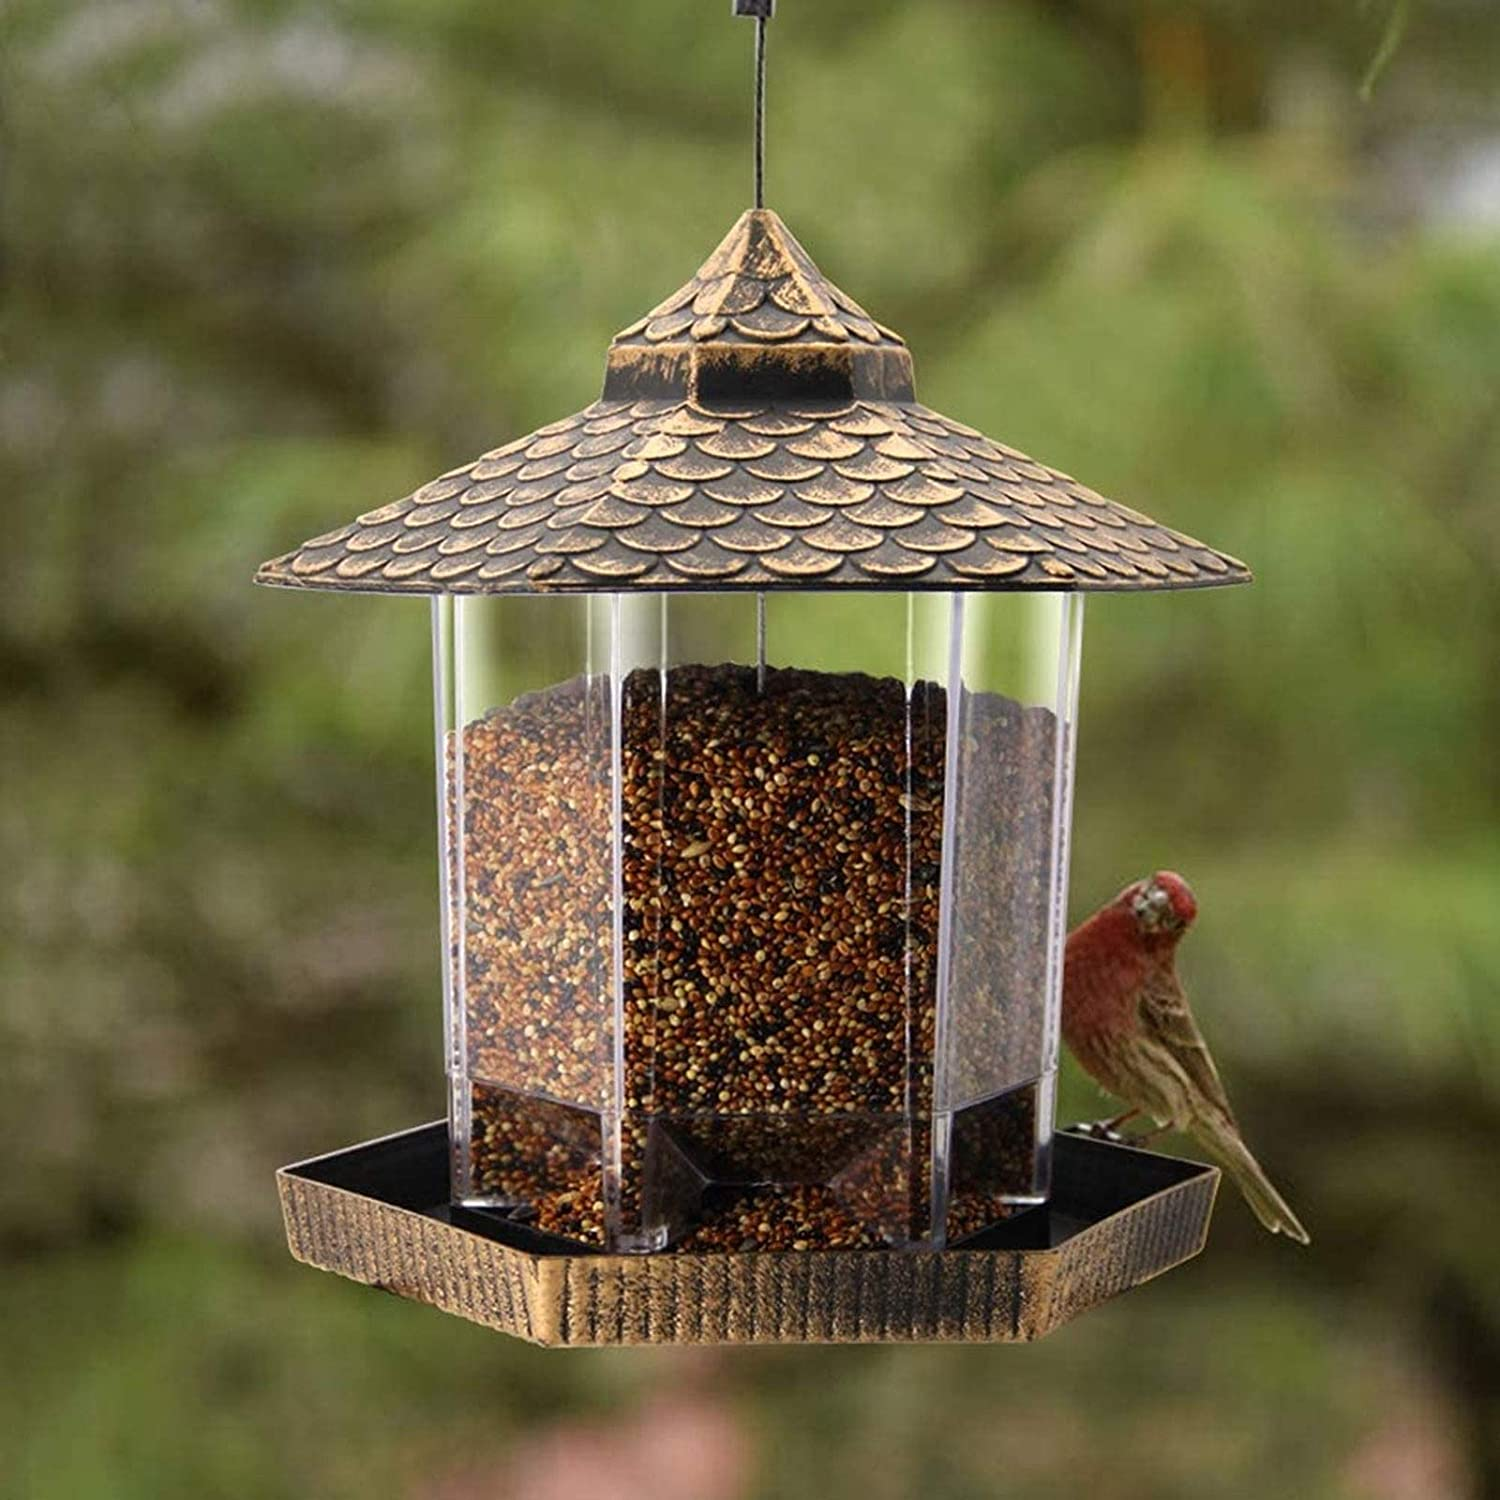 Twinkle Star Wild Bird Feeder Hanging for Garden Yard Outside Decoration, Hexagon Shaped with Roof : Garden & Outdoor